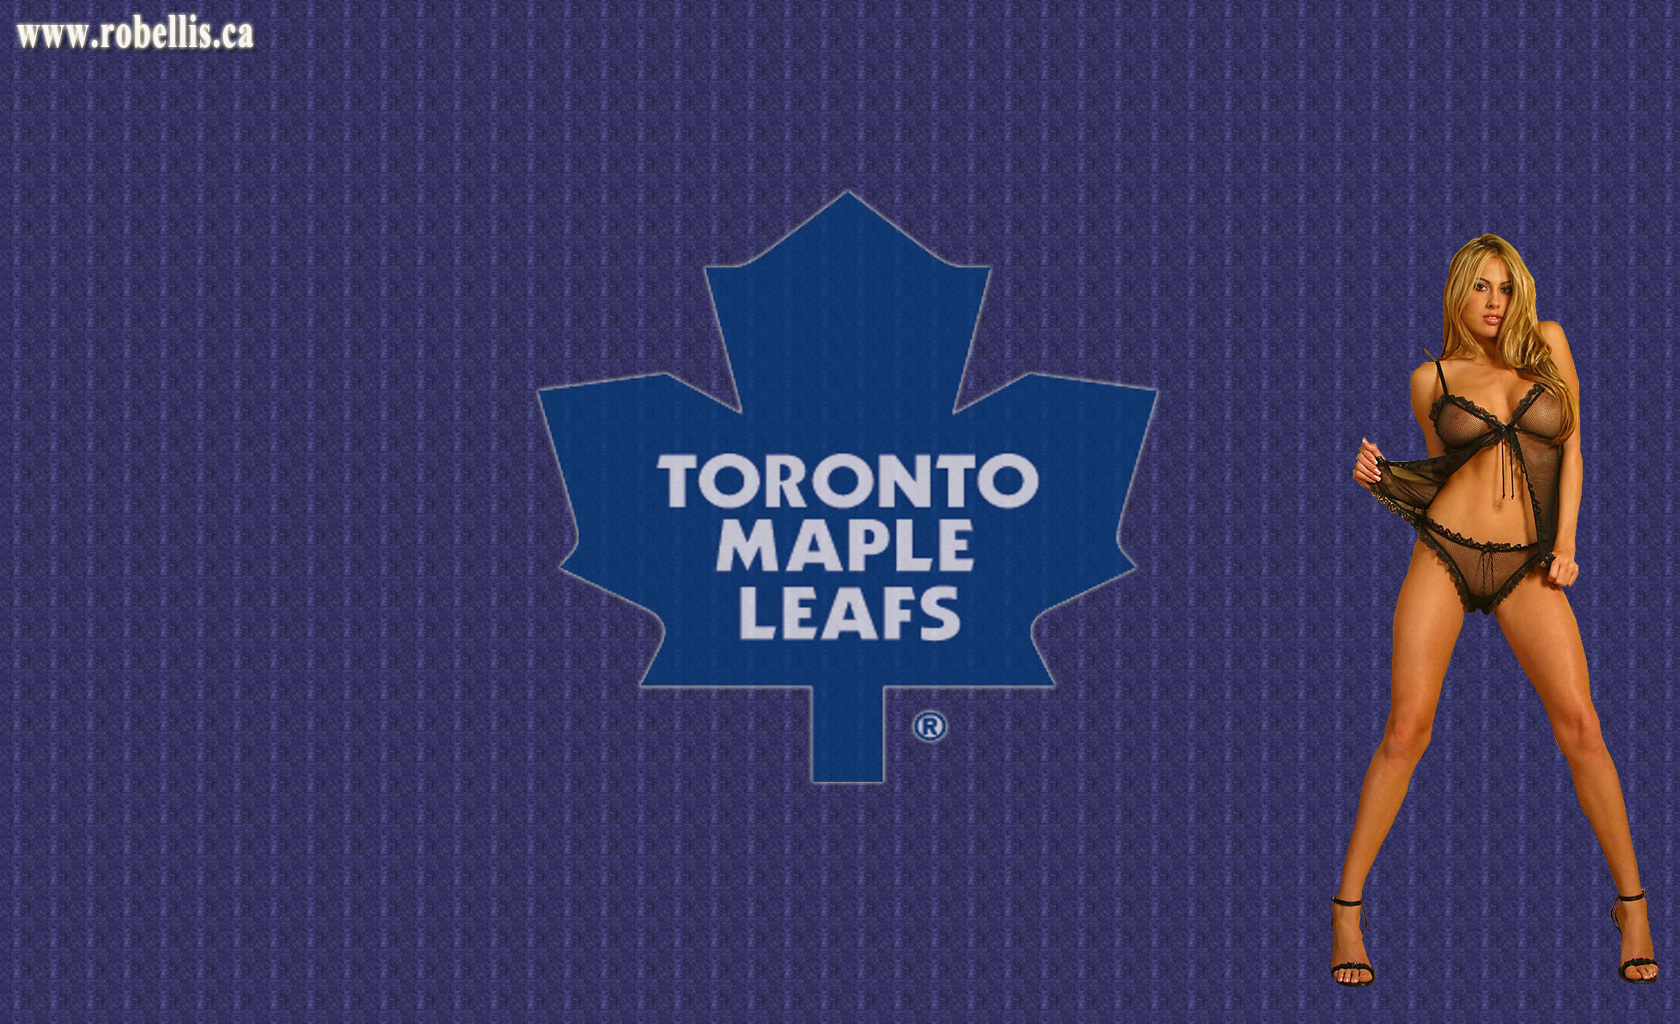 Toronto Maple Leafs wallpapers Toronto Maple Leafs background 1680x1024